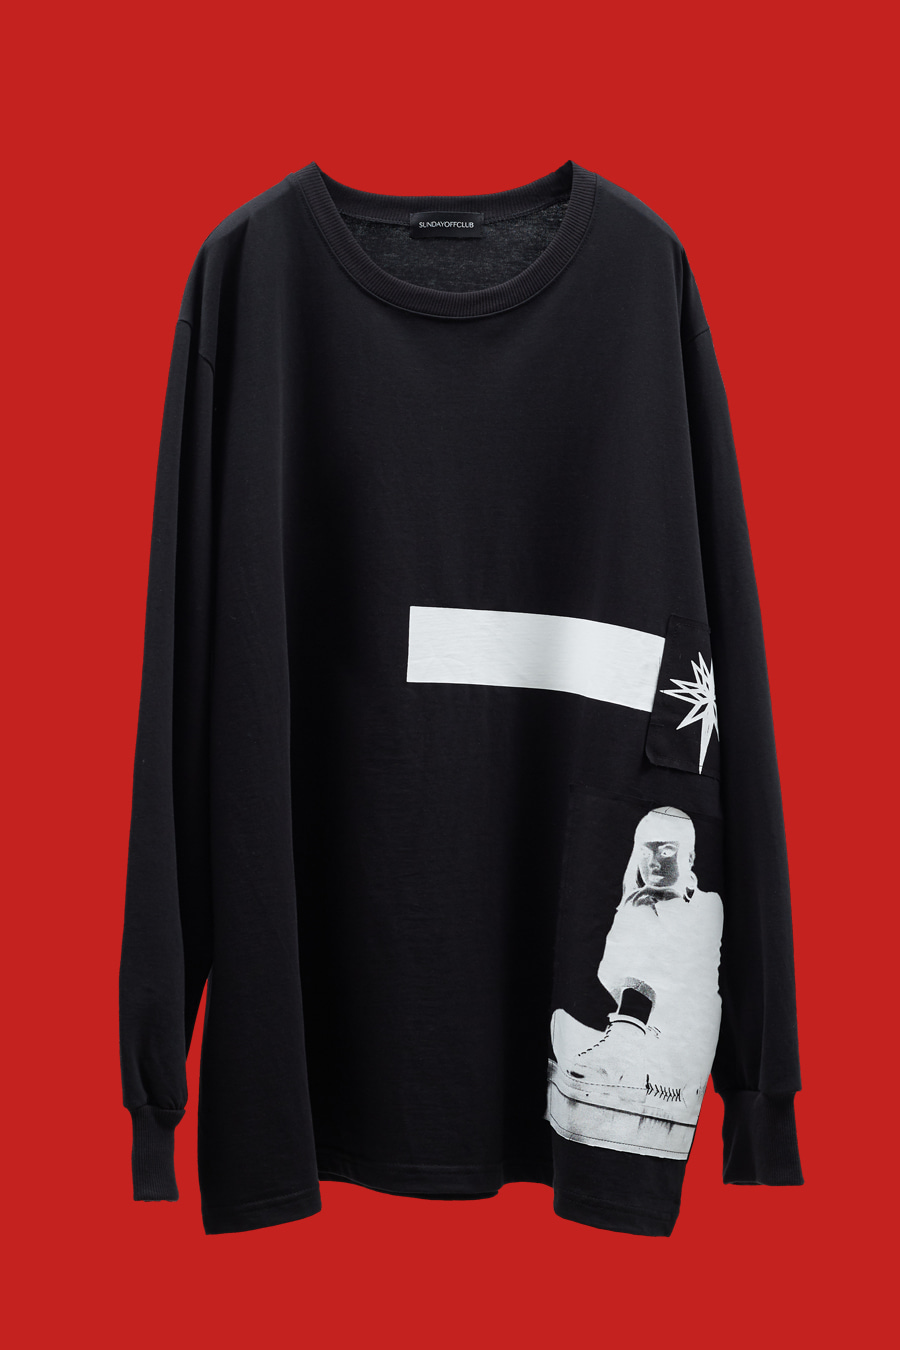 Season Patch Details Line Artwork LST-shirt - Black